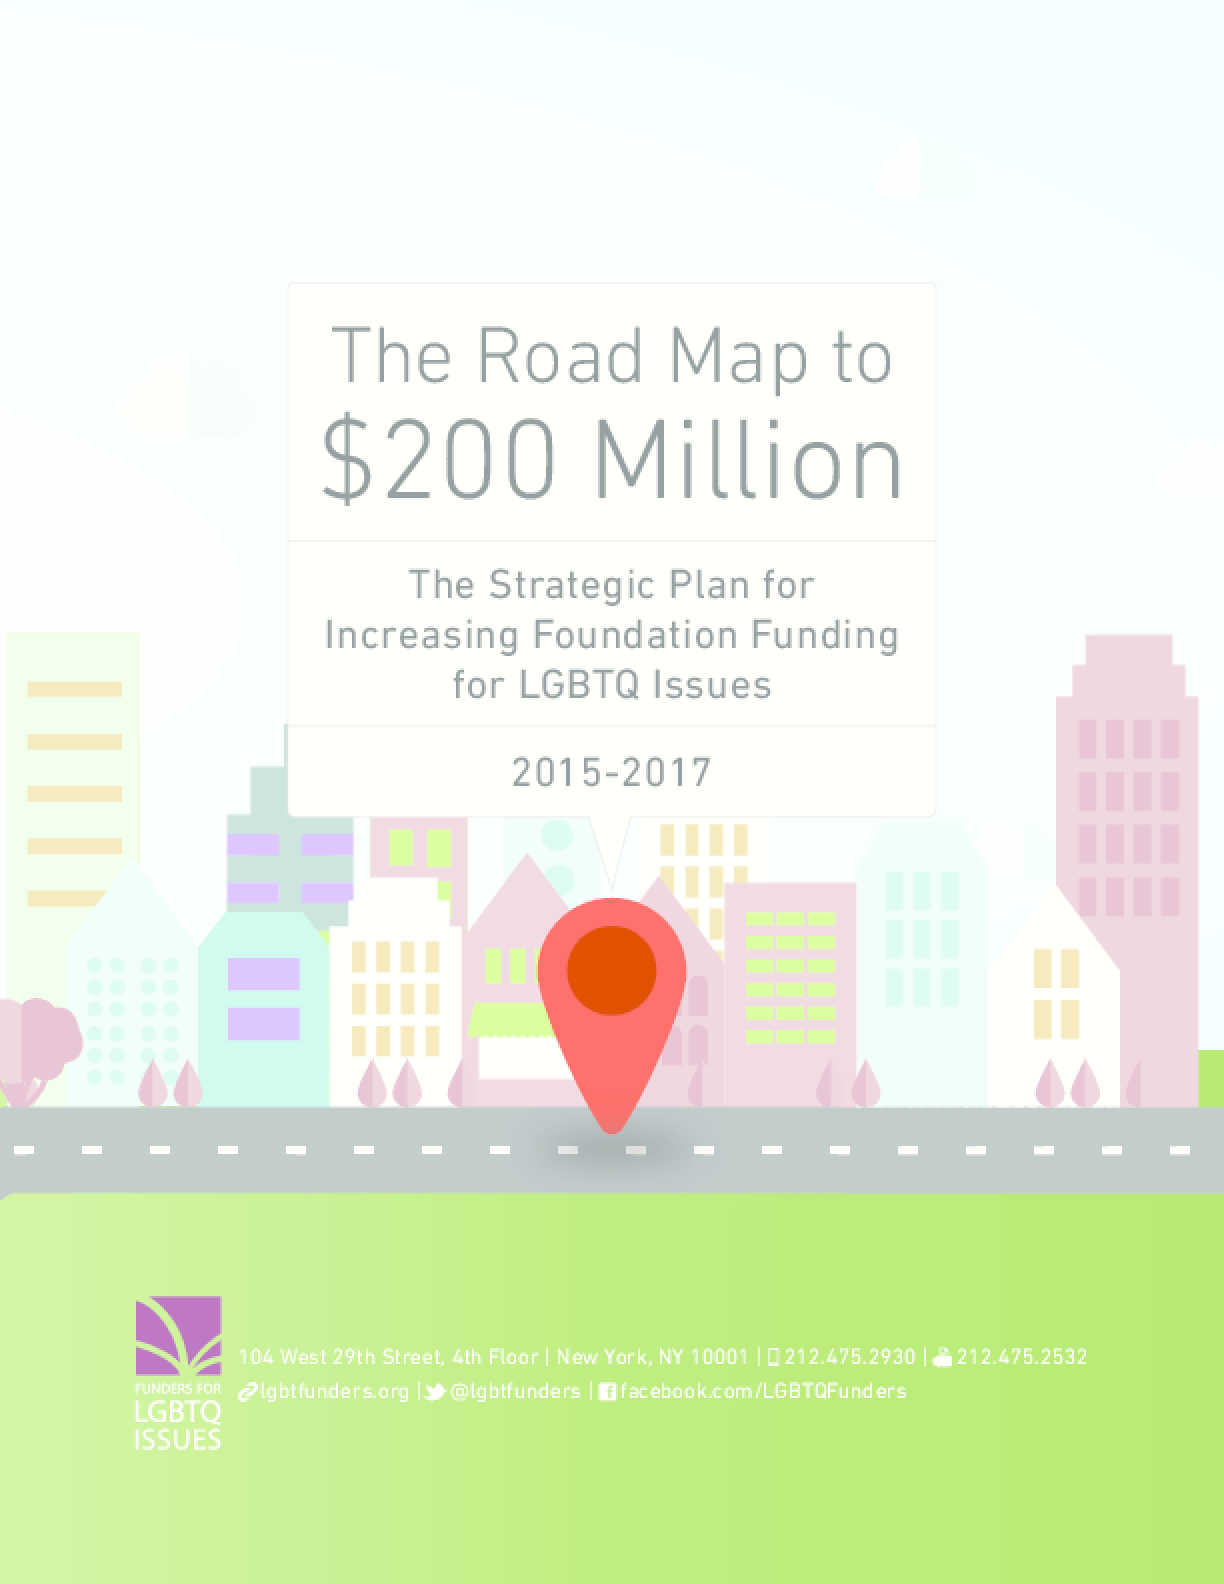 The Road Map to $200 Million: The strategic Plan for Increasing Foundation Funding for LGBTQ Issues